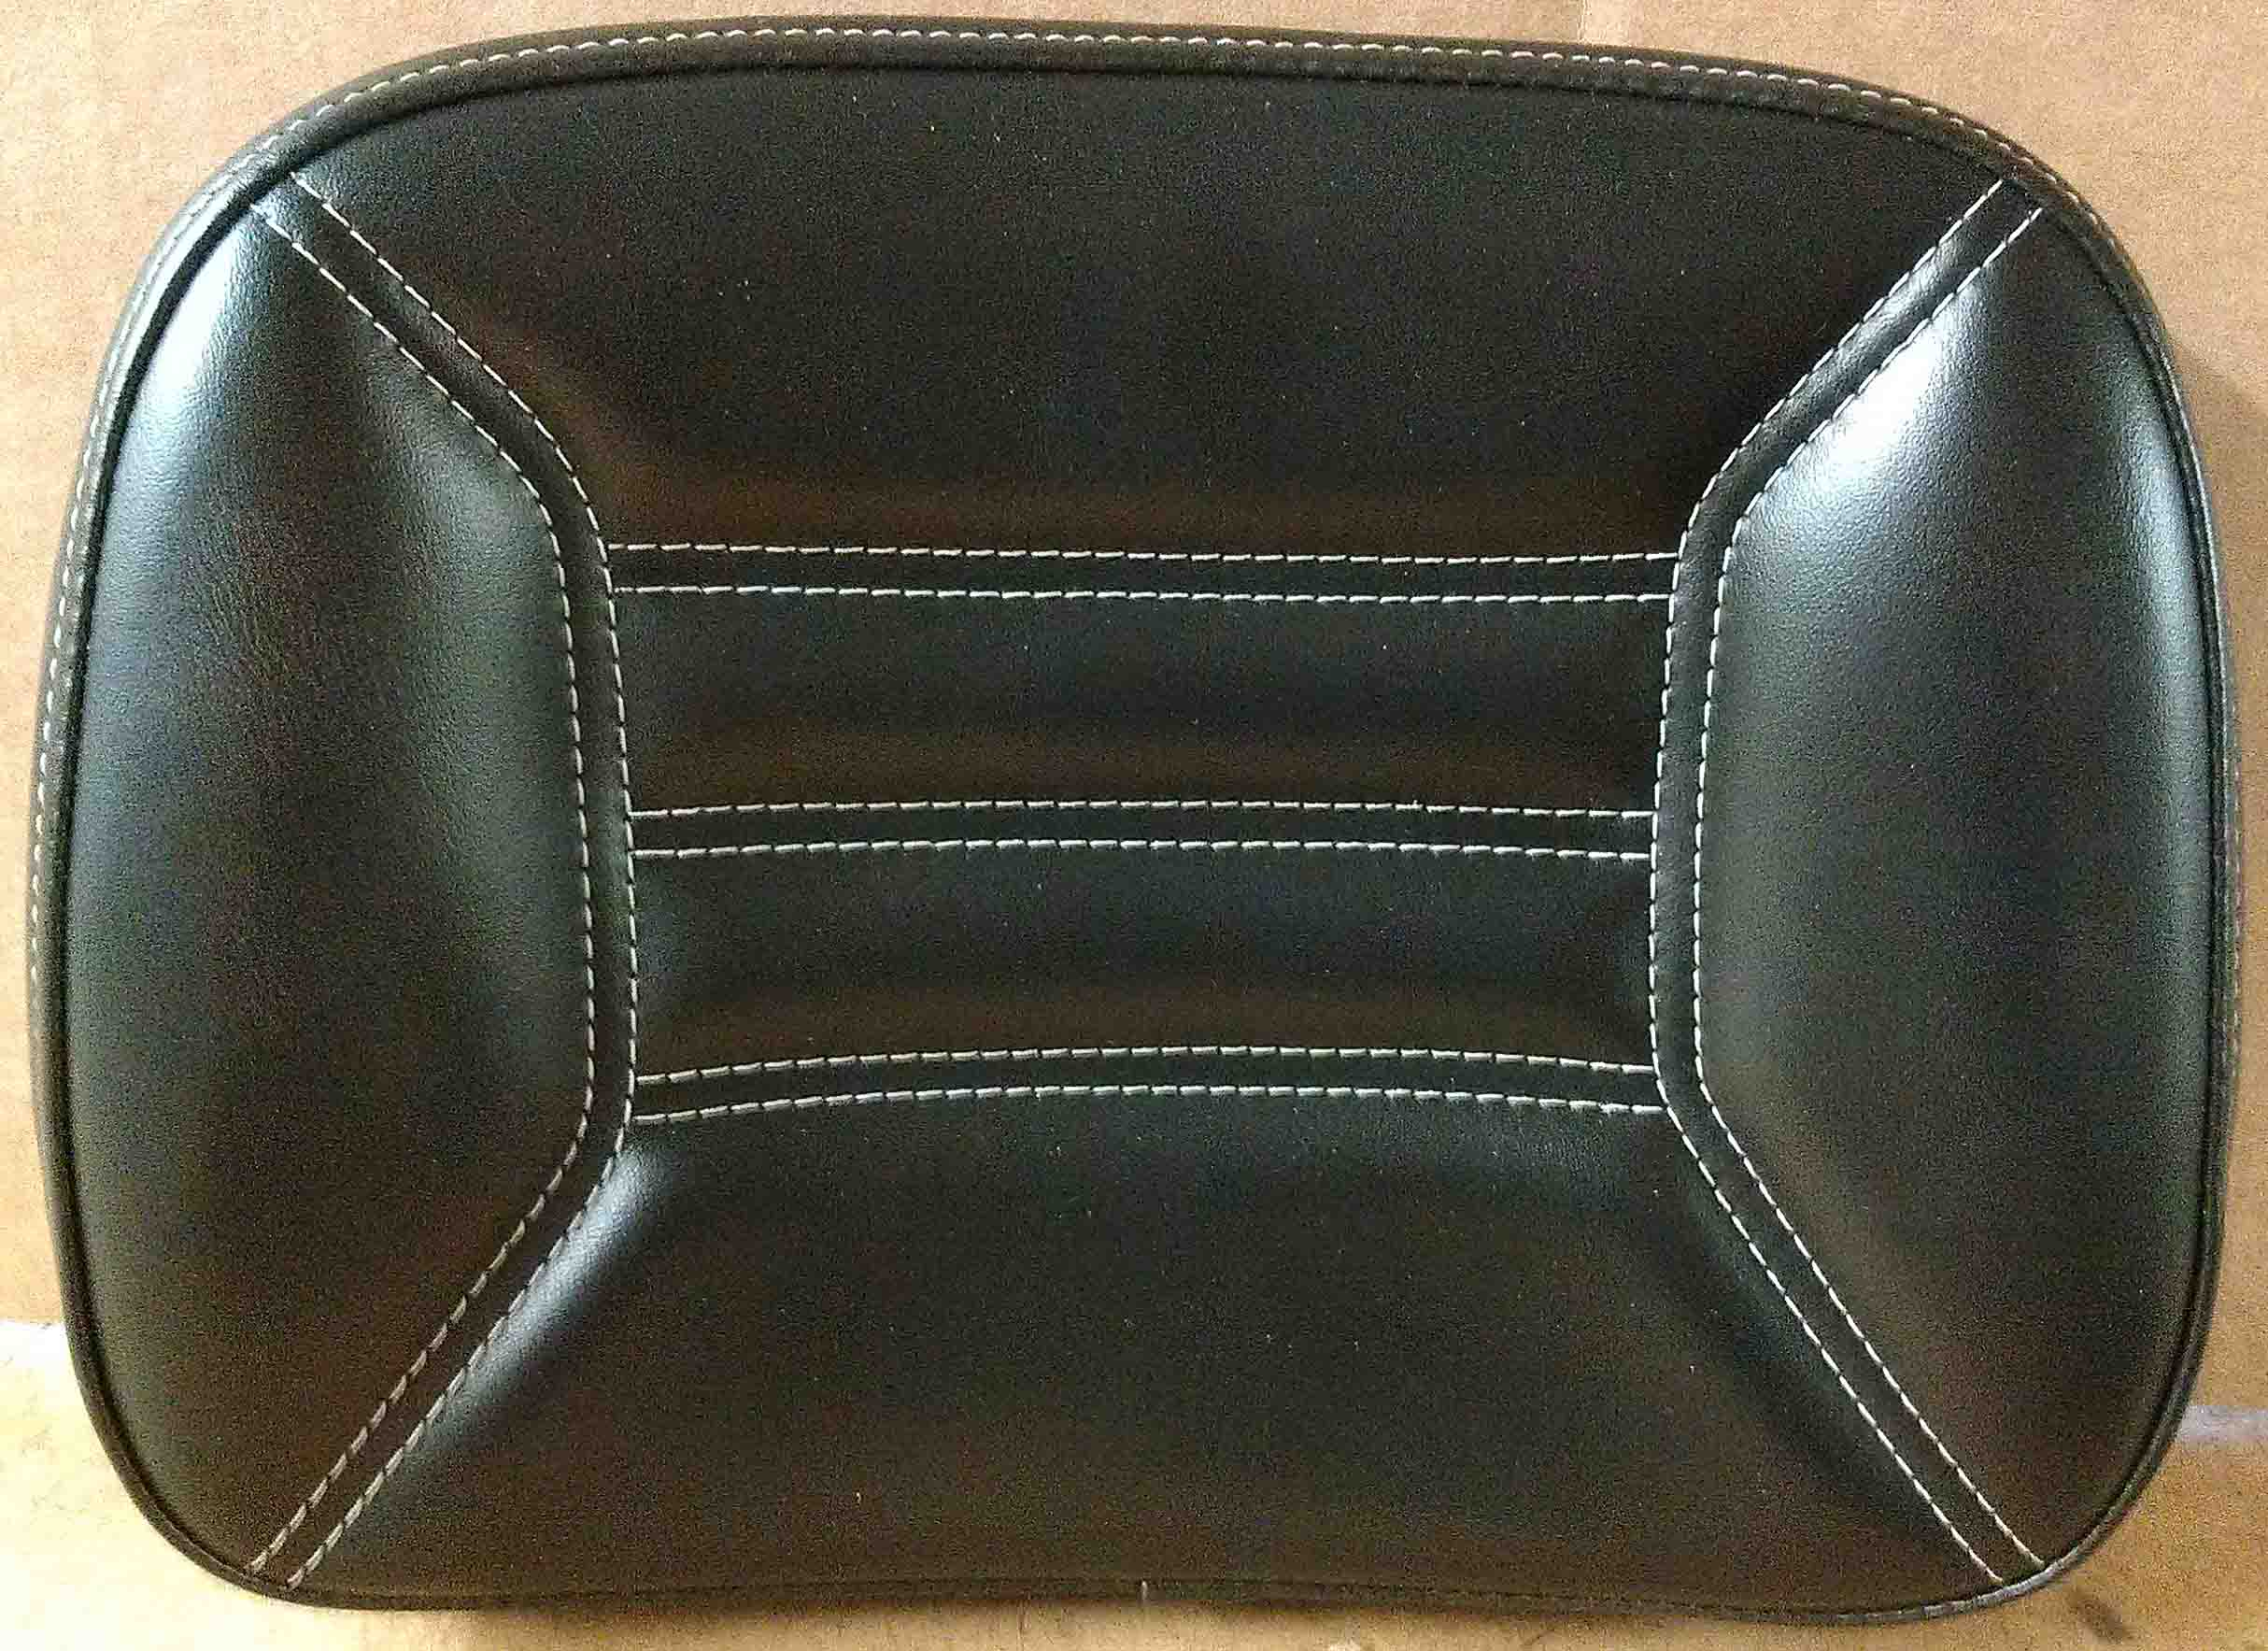 The entire backrest center and wings in this option is made with one black material to match the center material of the stock passenger backrest